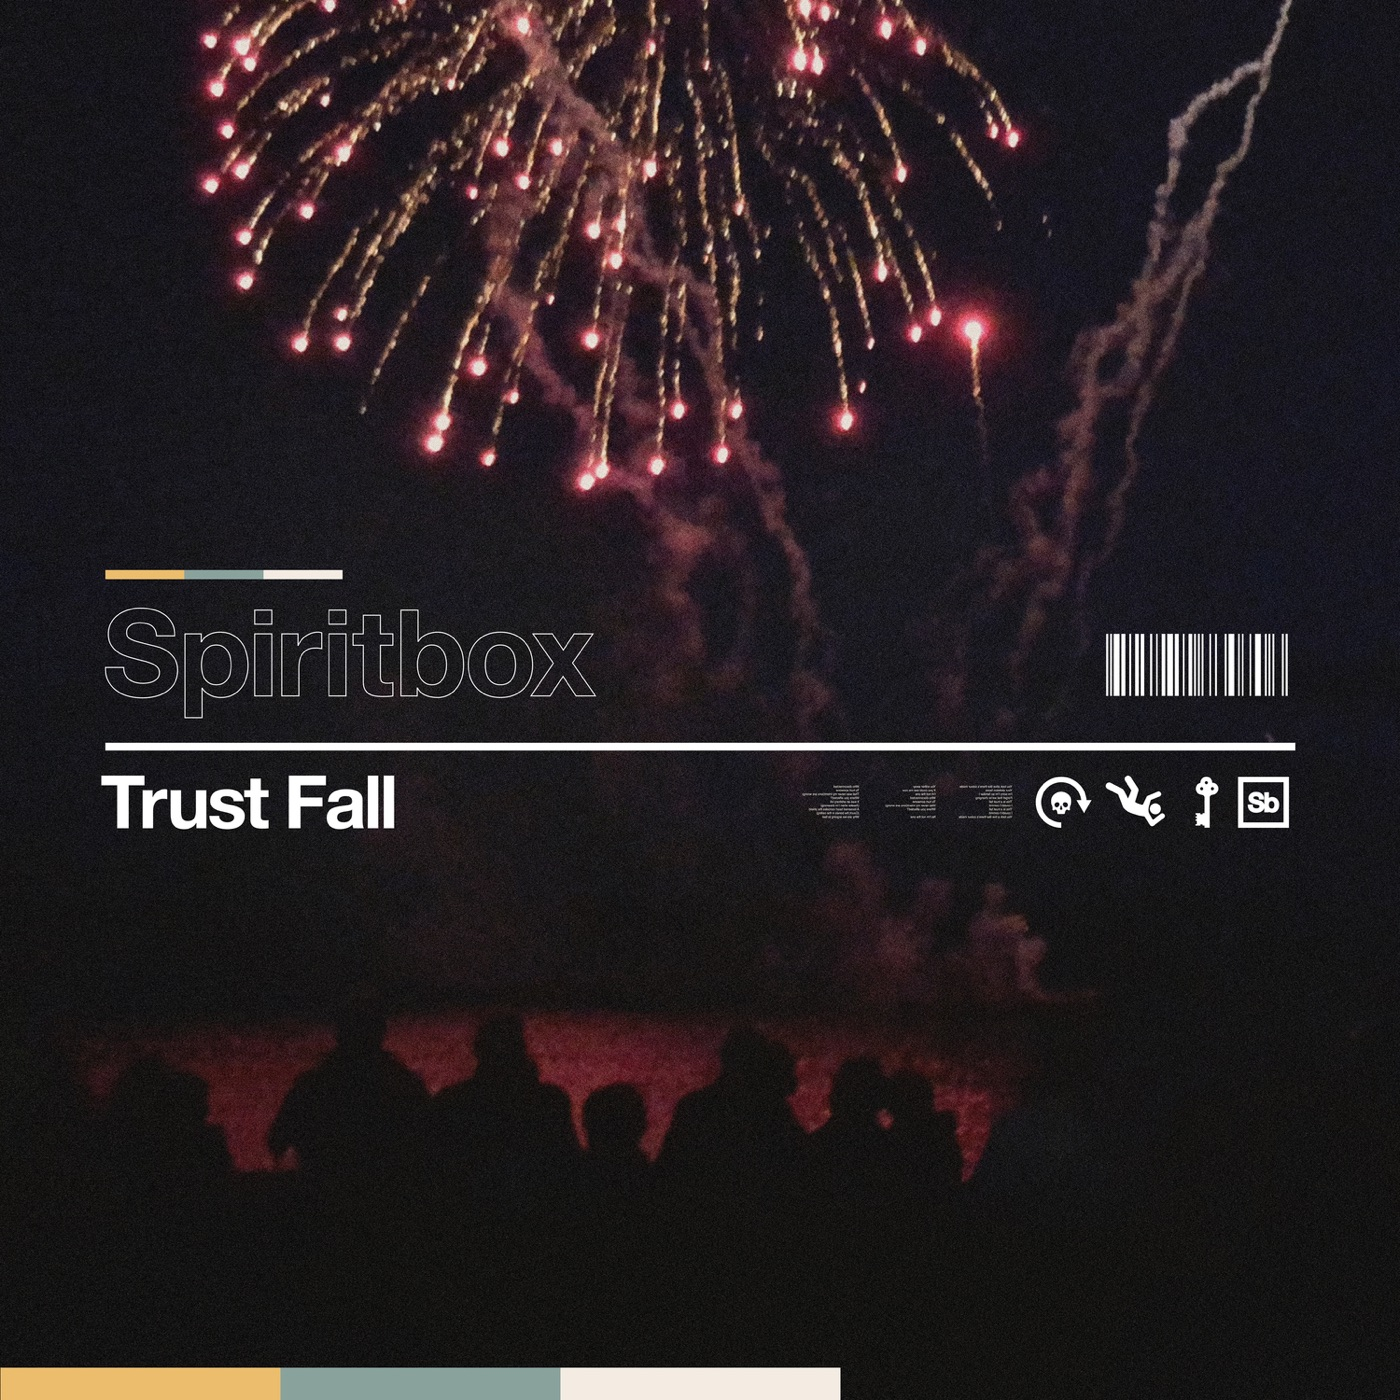 Spiritbox - Trust Fall [single] (2018)